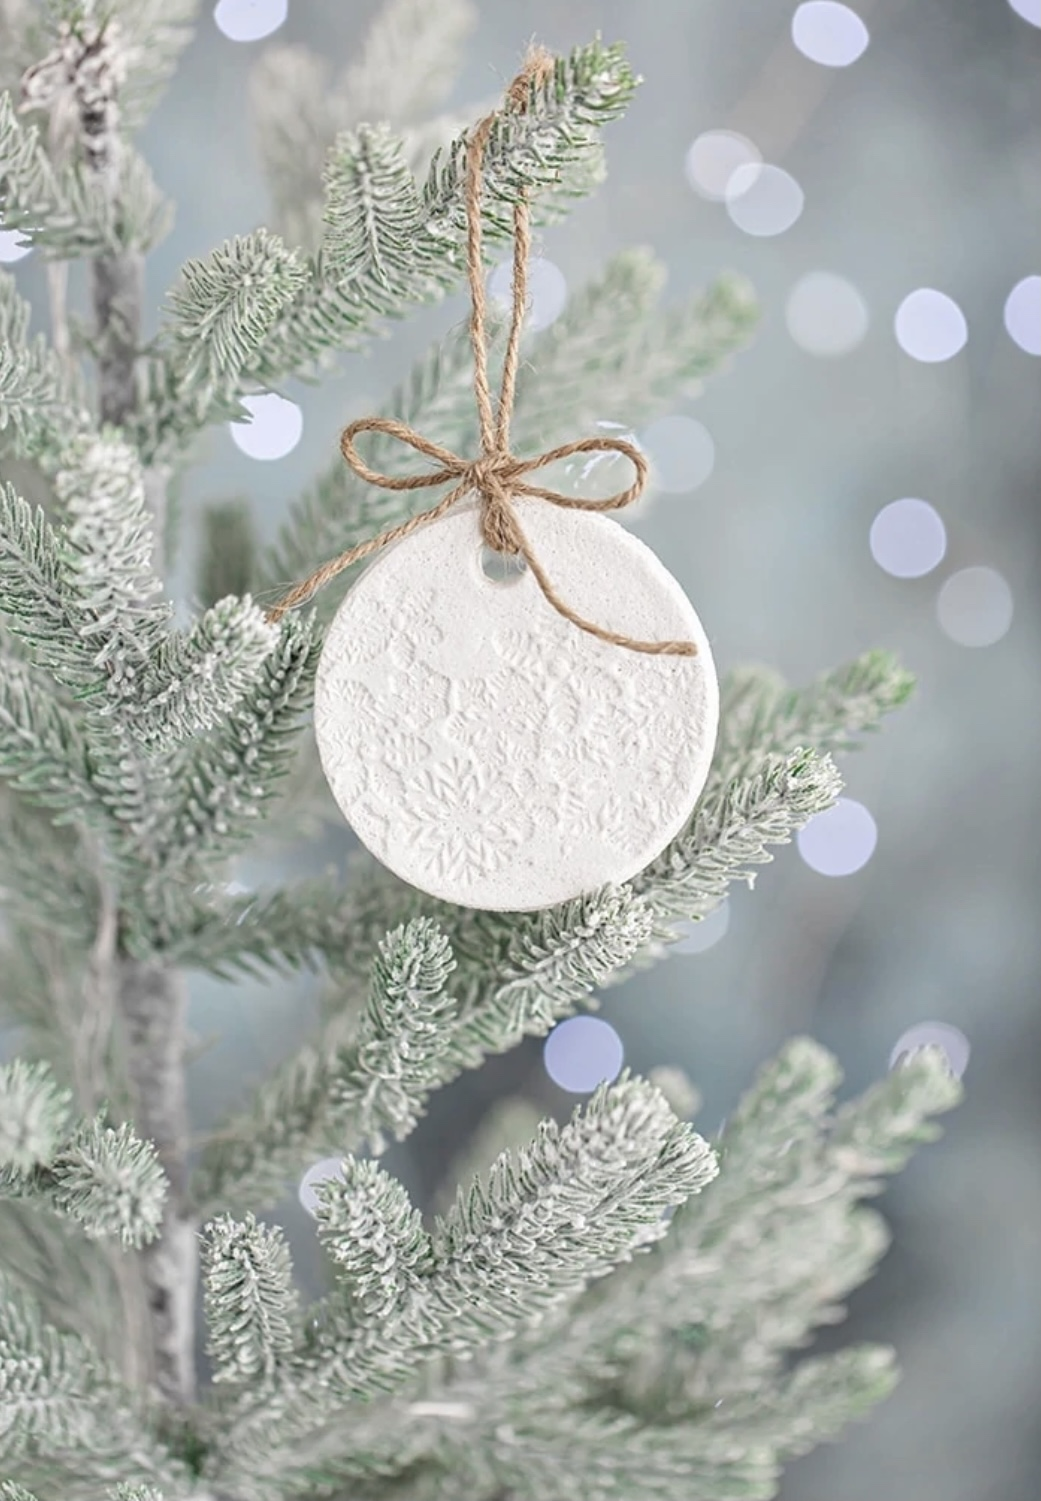 Easy Salt Dough Ornaments | 6 Nostalgic and Fun Holiday Crafts for Kids